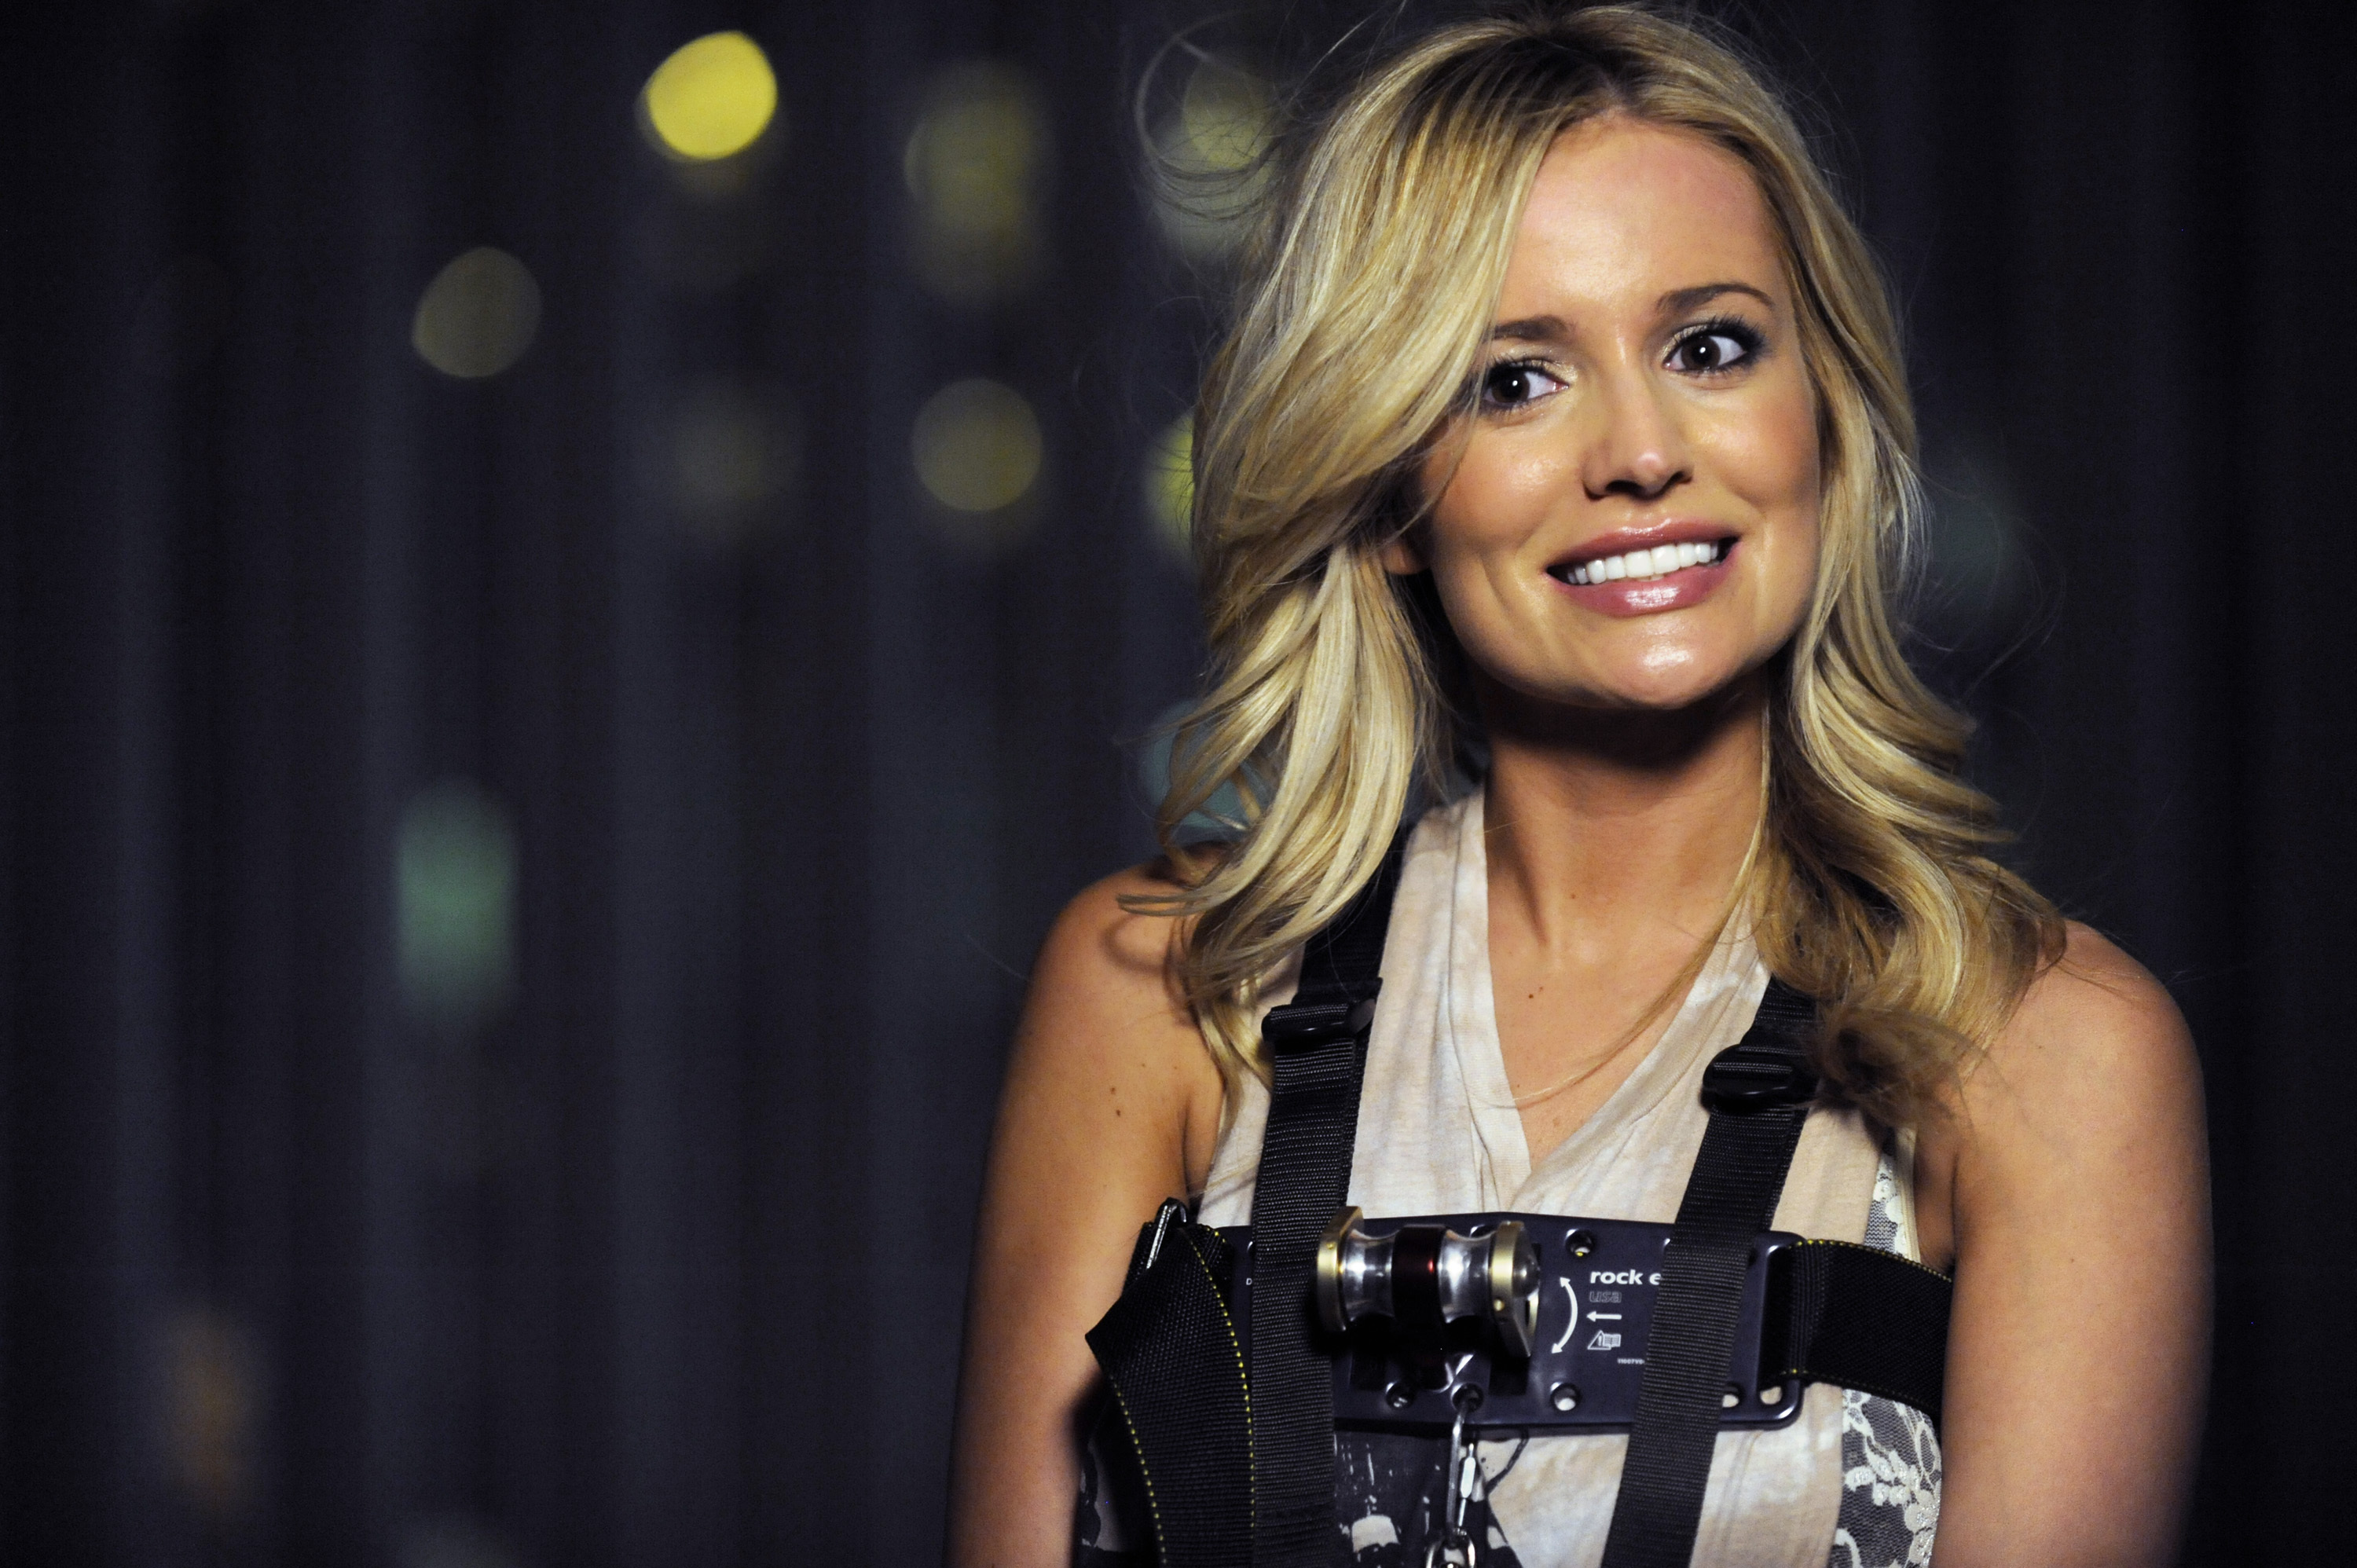 'The Bachelorette' Recap: Emily Maynard Reacts to Arie's Past Relationship With Producer ... Sort Of